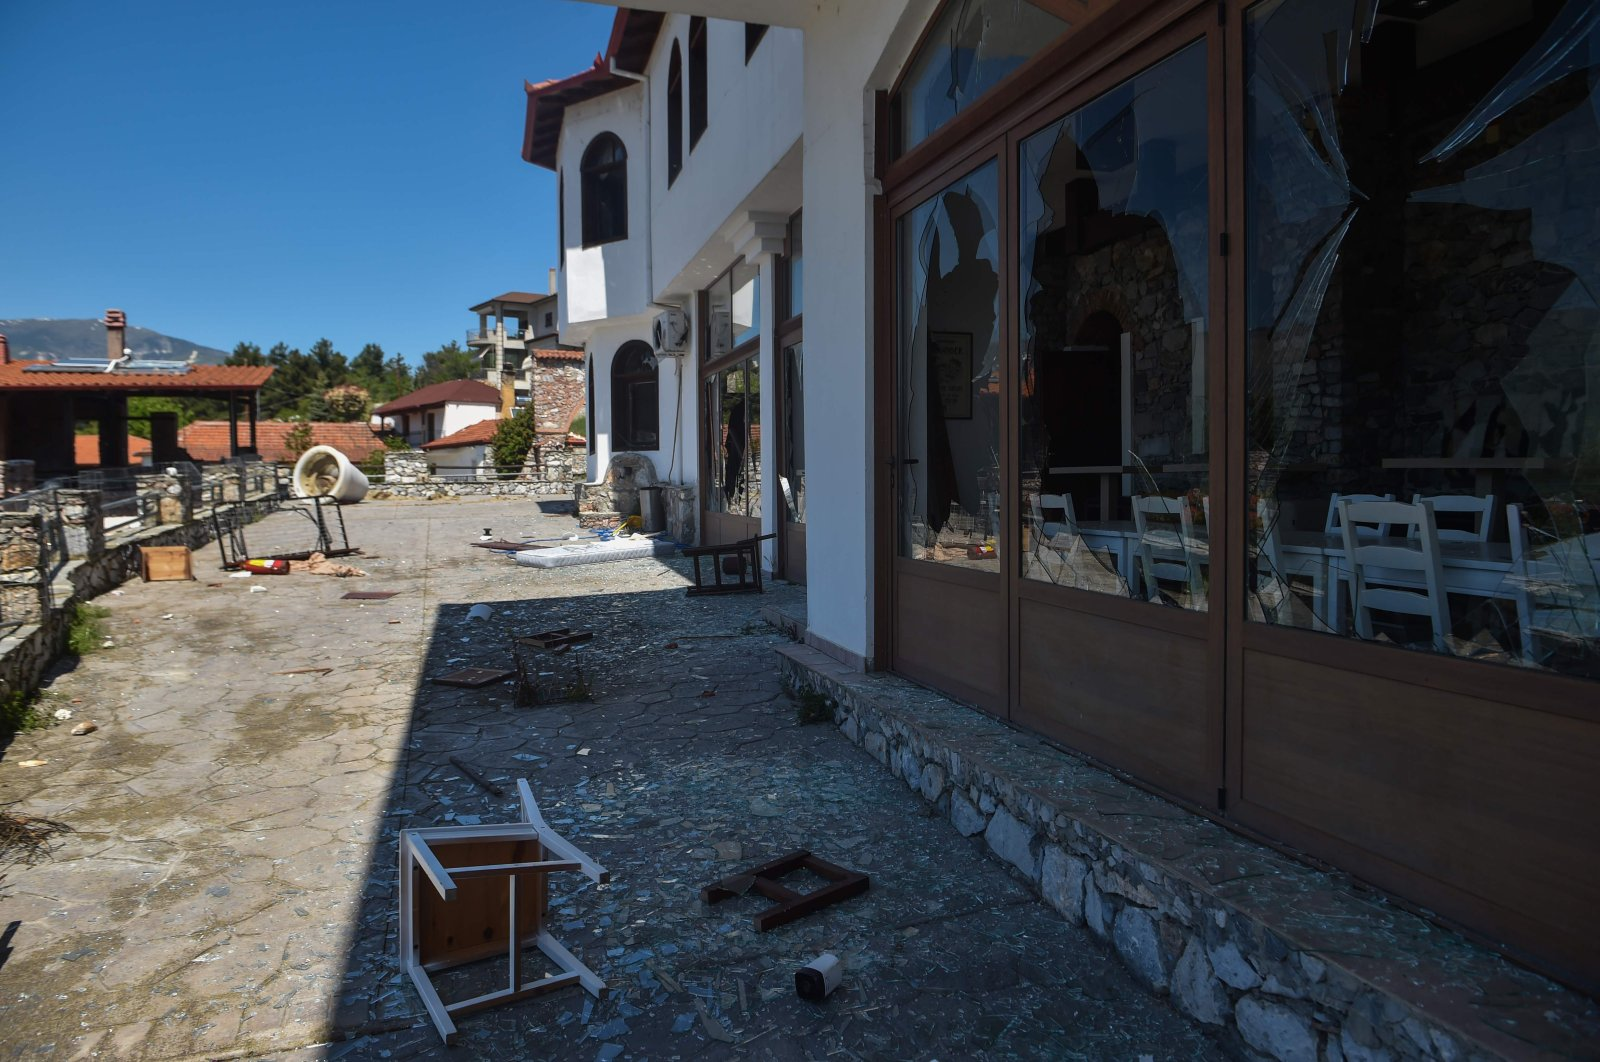 View of the damage on May 8, 2020, caused by some 250 protestors who ransacked a hotel to prevent the settlement of 57 refugee families on May 4, in the village of Arnissa, 560km north from Athens. (AFP Photo)